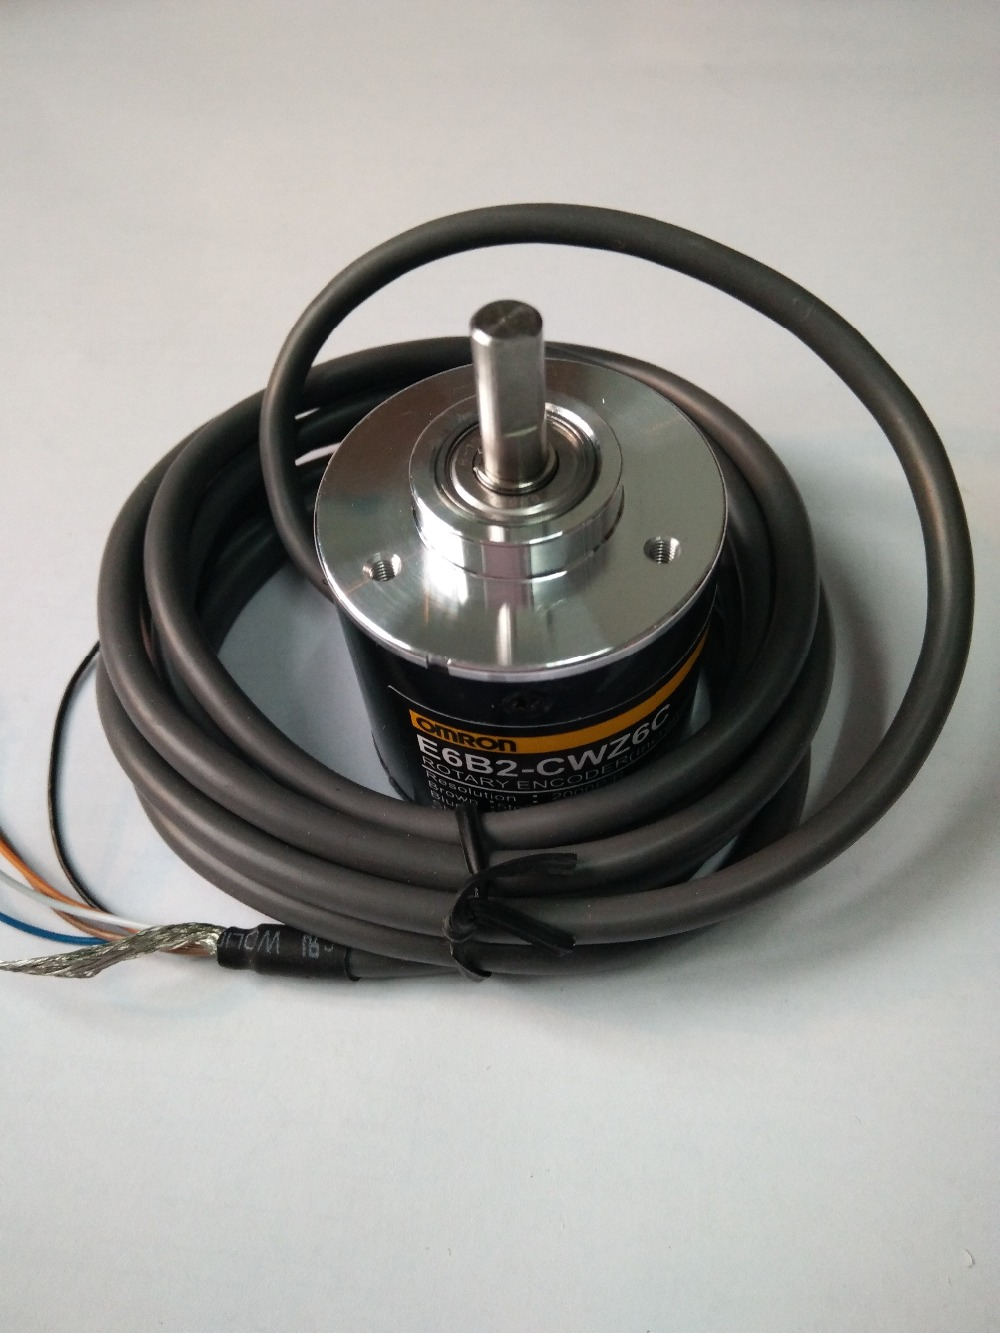 Image 2 - Free Shipping E6B2CWZ6C OMRON Rotary Encoder E6B2 CWZ6C 20 30 40 60 100 200 360 400 500 600 1000 1024 1800 2000 2500P/R 5 24v-in Switches from Lights & Lighting